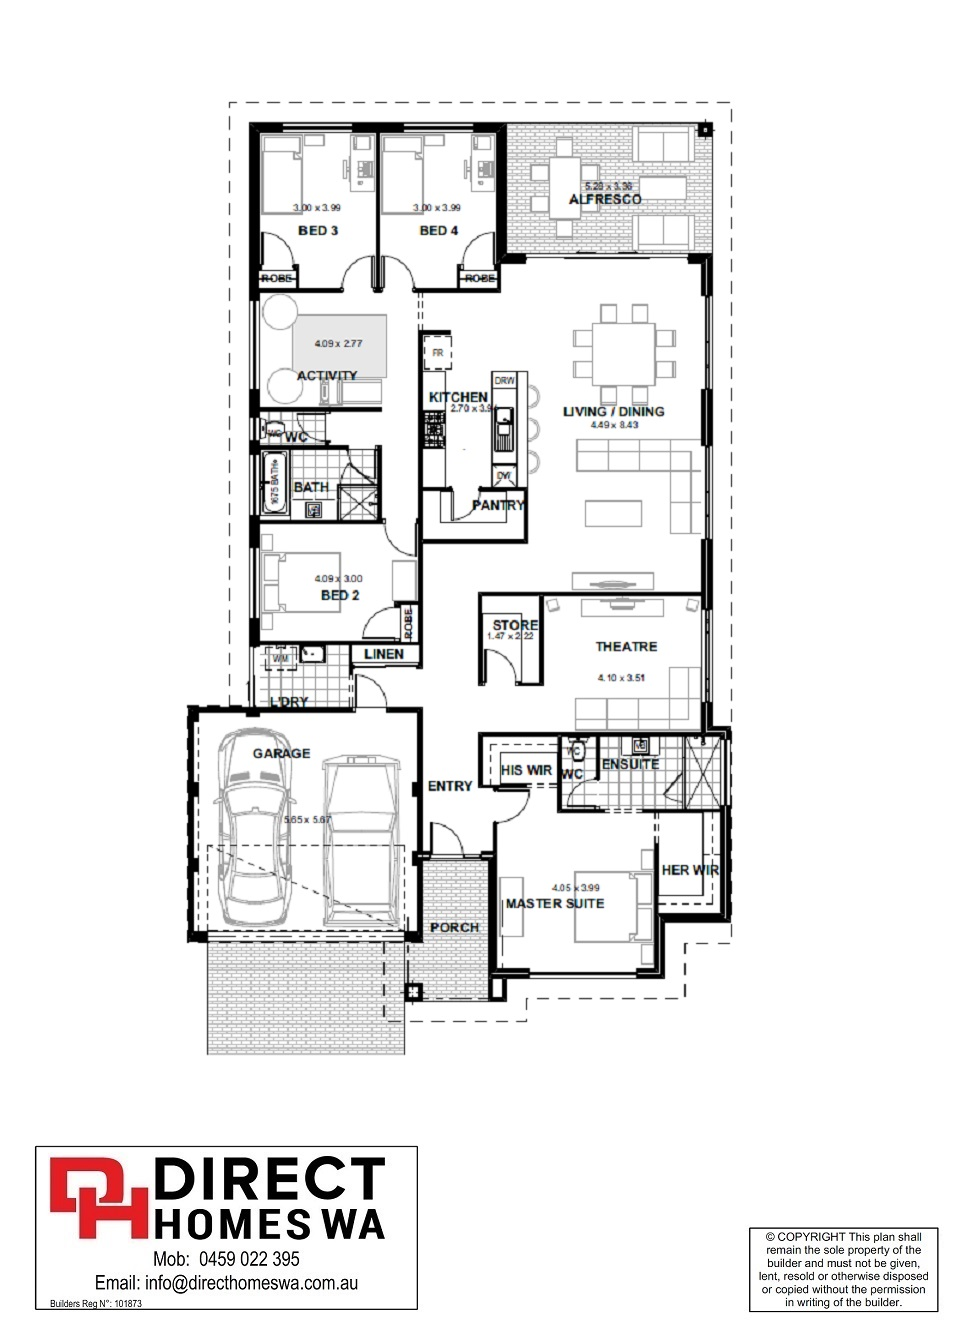 The Fiore Floor plan